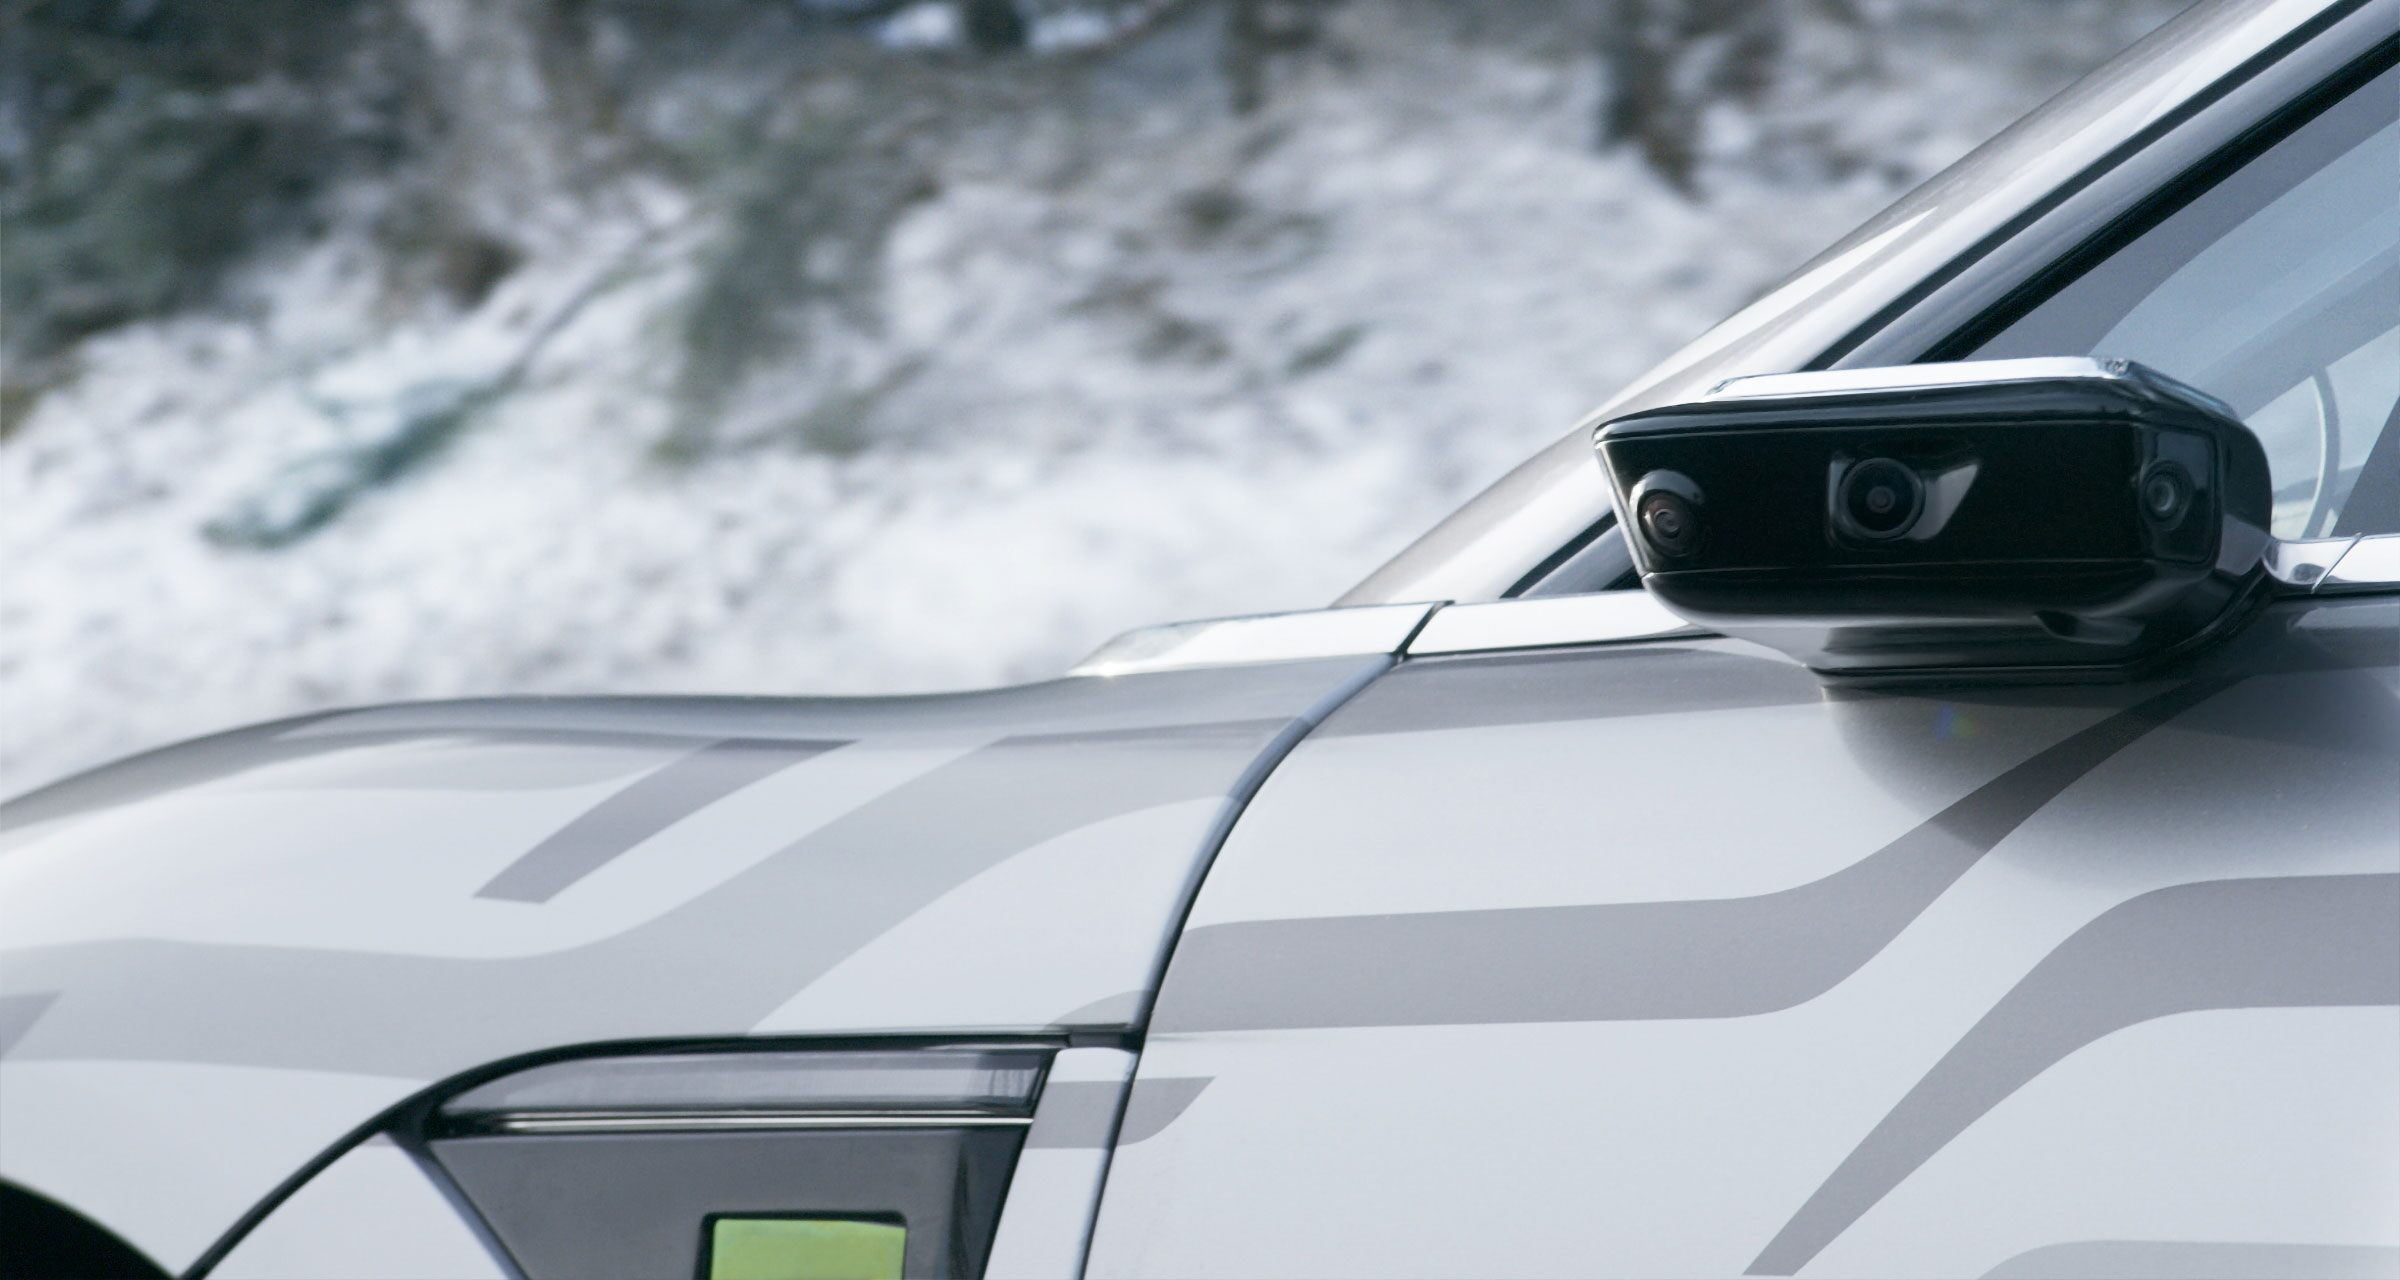 Sony's electric car tested on European roads